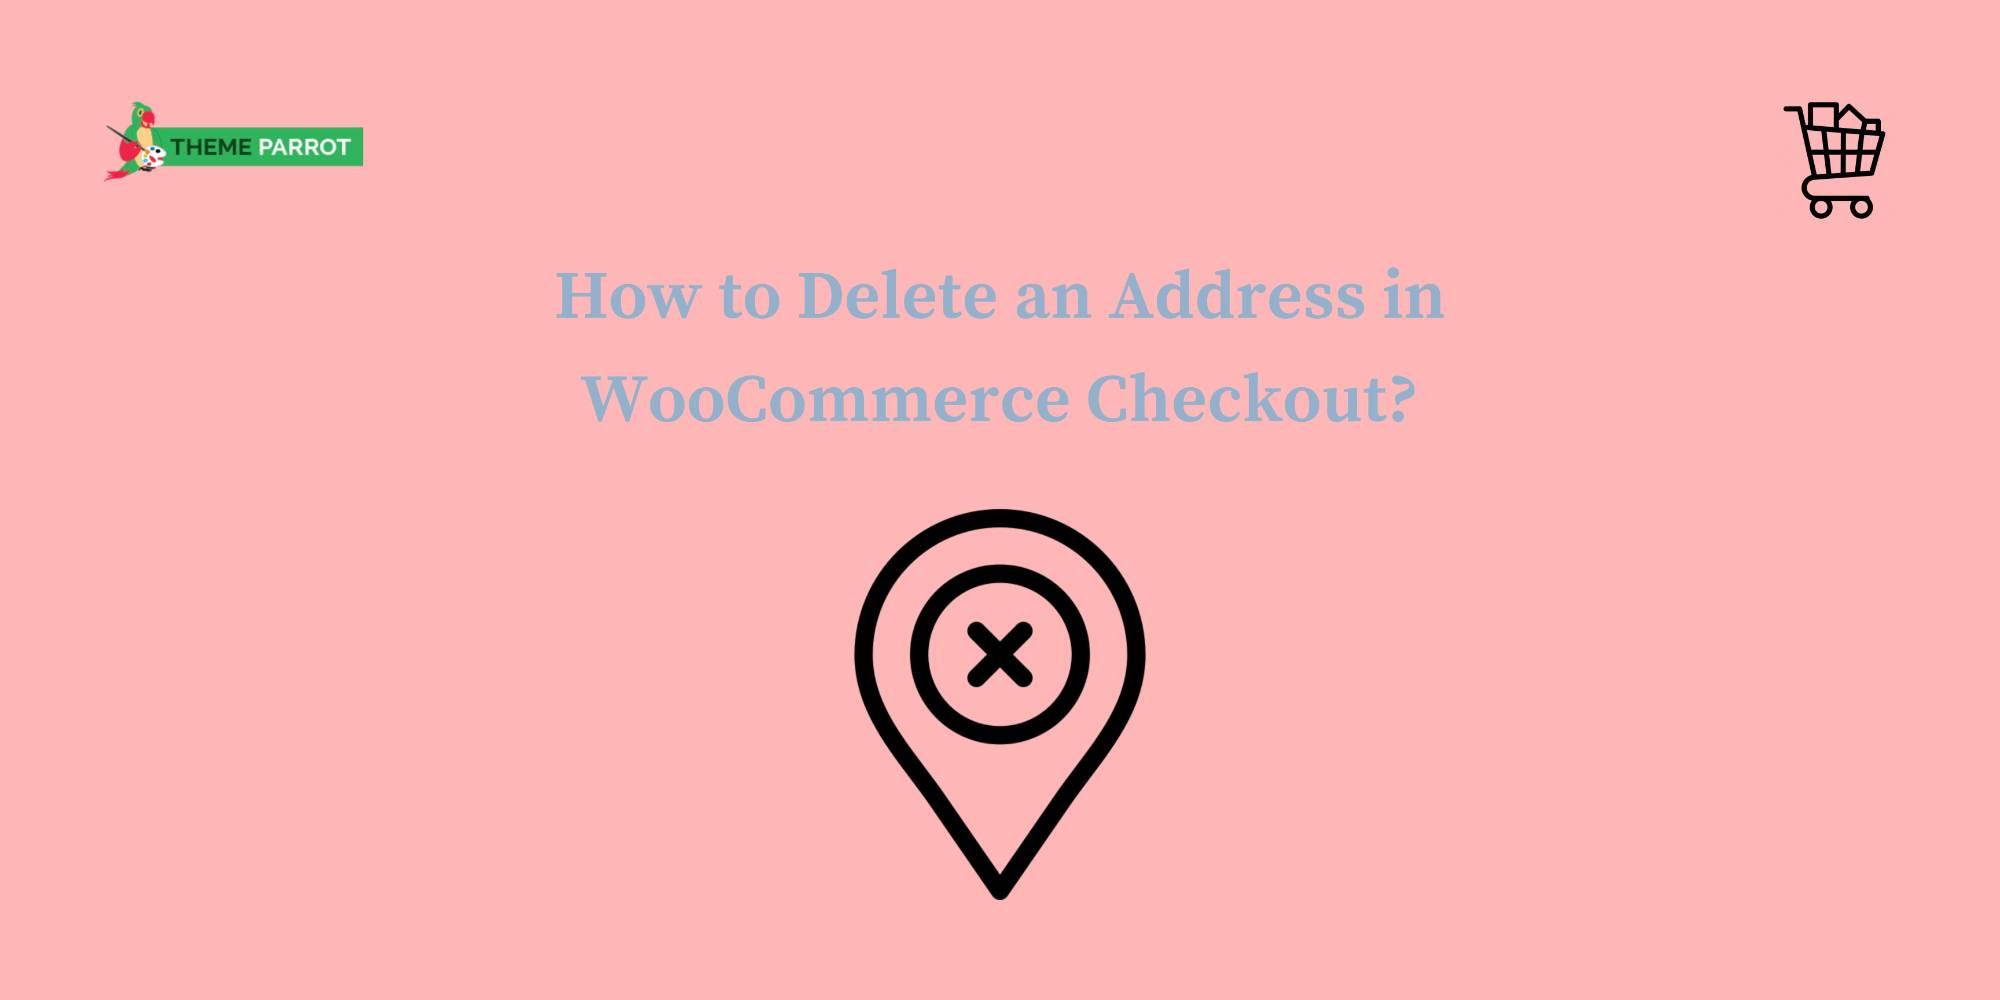 hoe to delete an address in woocommerce checkout